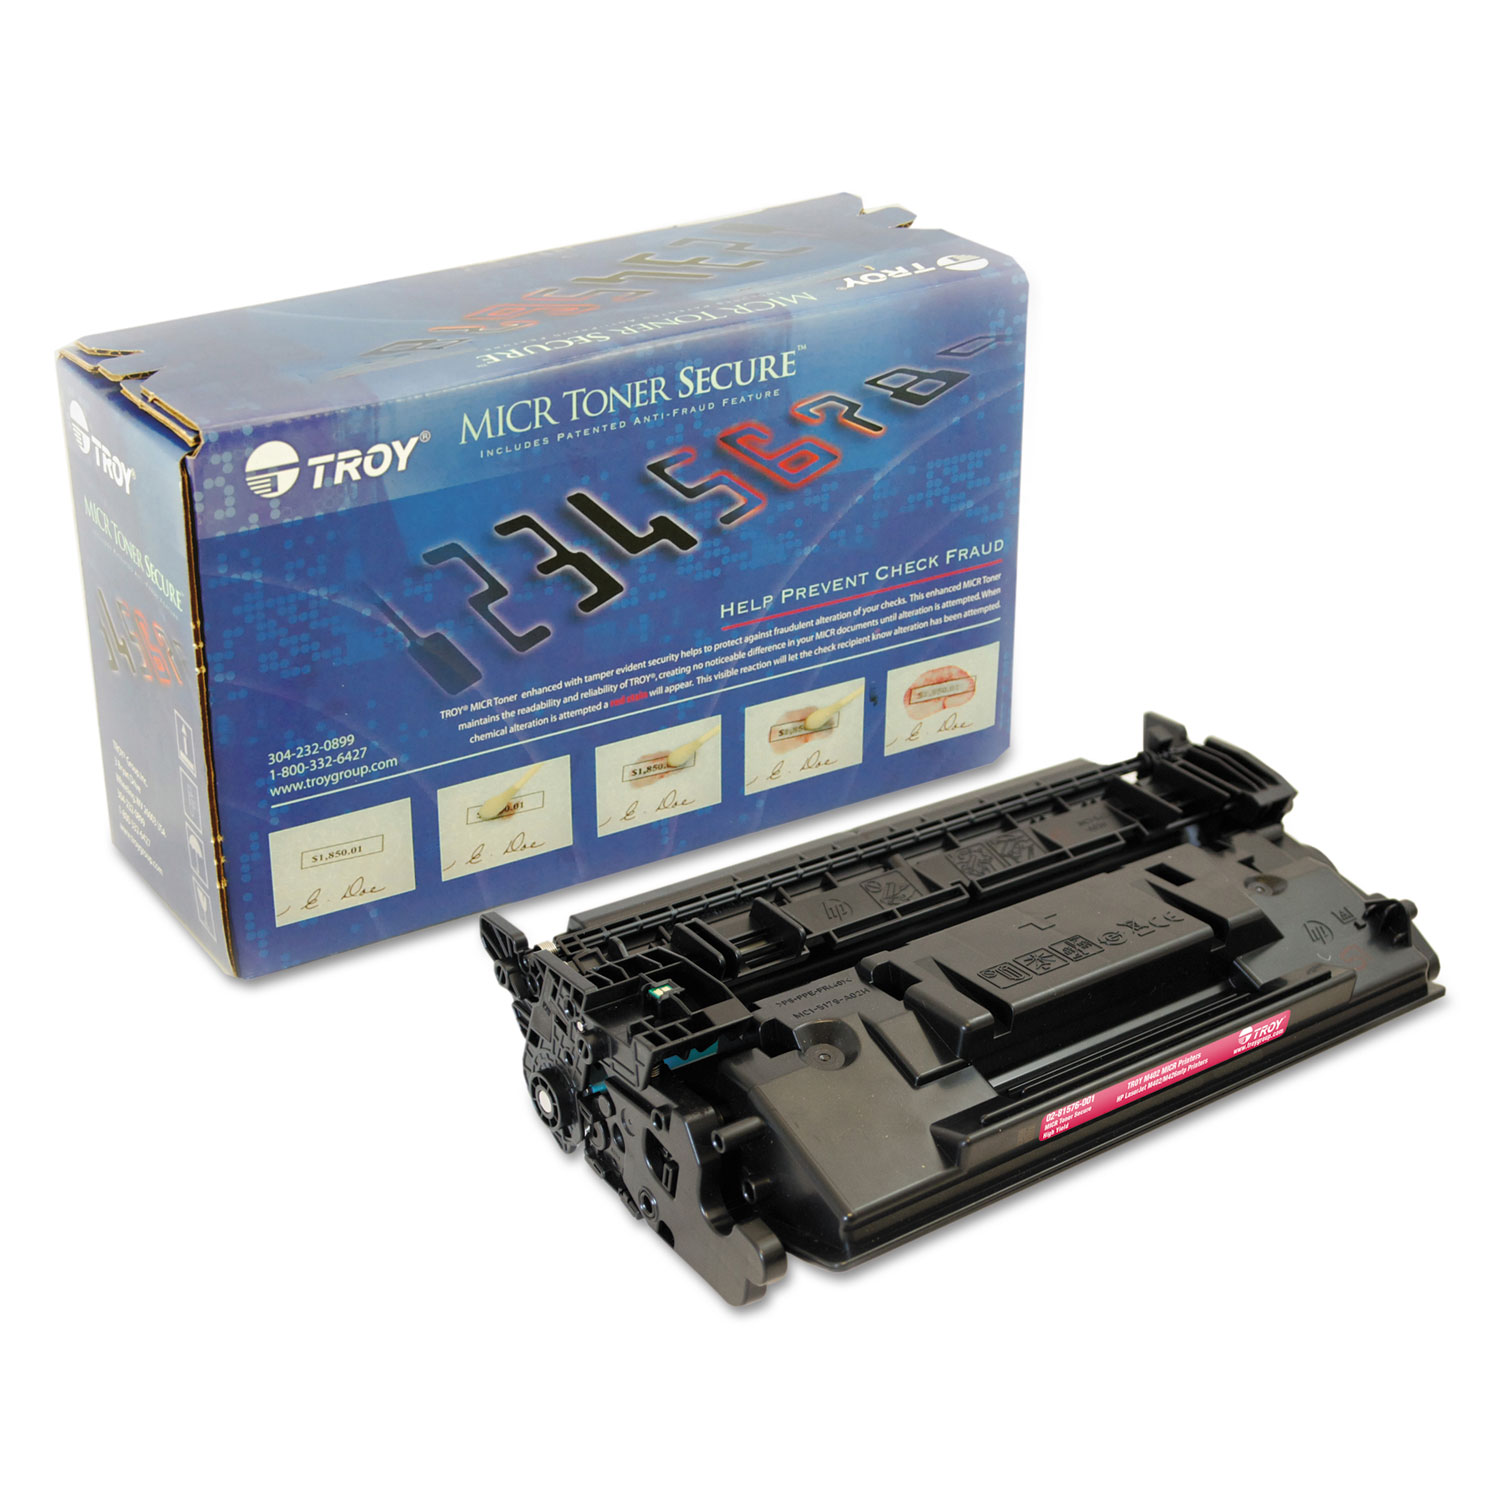 Remanufactured Alernative for 0281576001 226X High-Yield MICR Toner Secure, Alternative for HP CF226X, Black